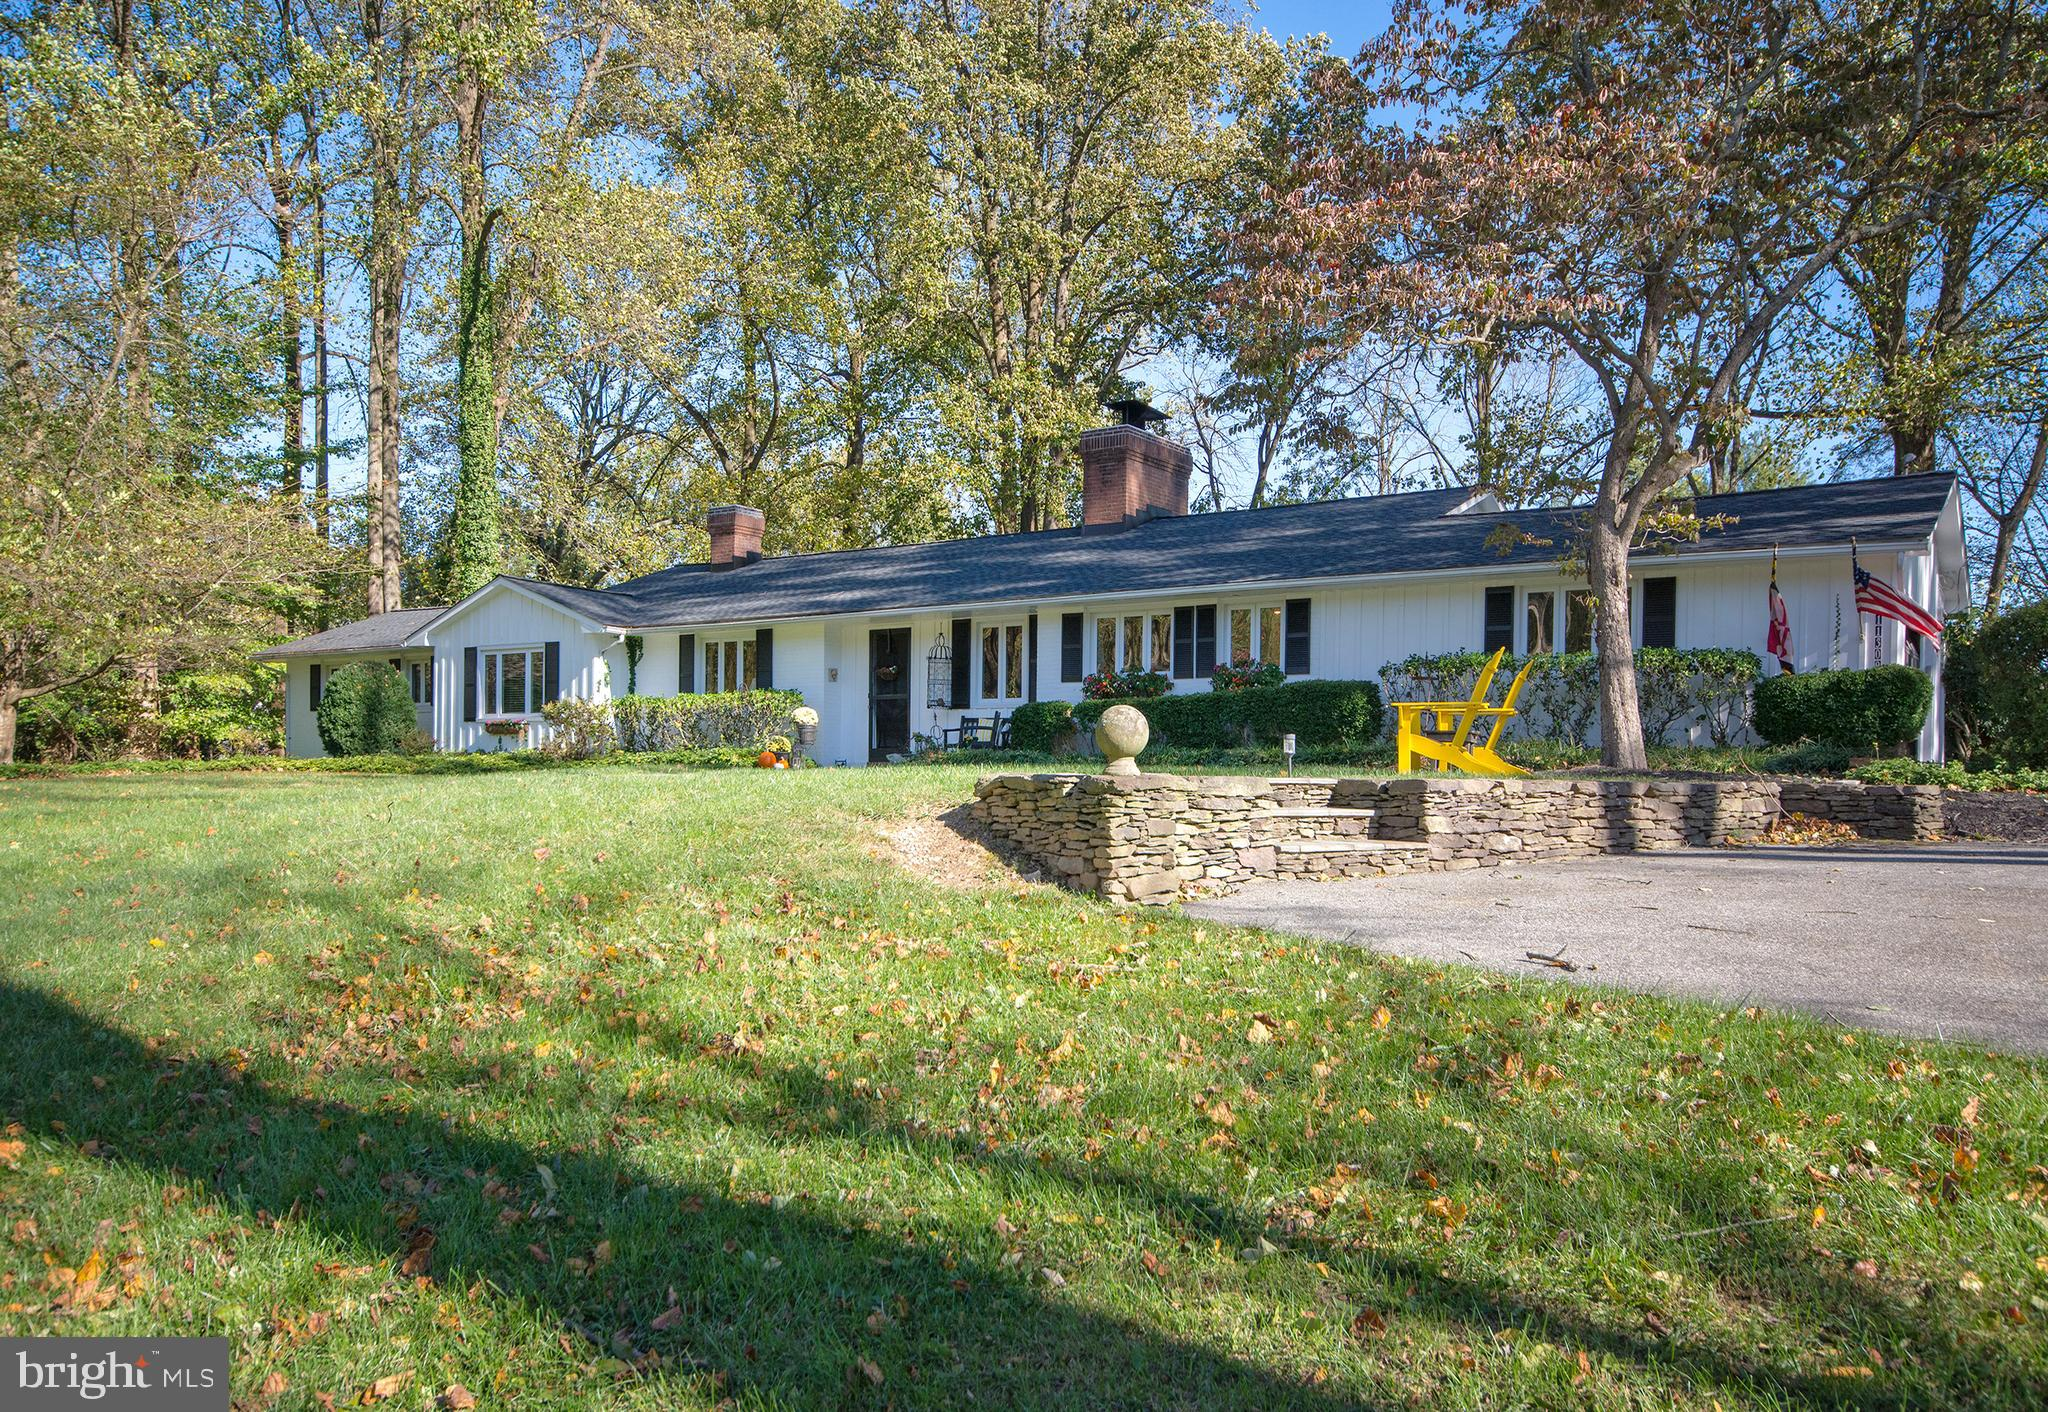 11309 OLD CARRIAGE ROAD, GLEN ARM, MD 21057